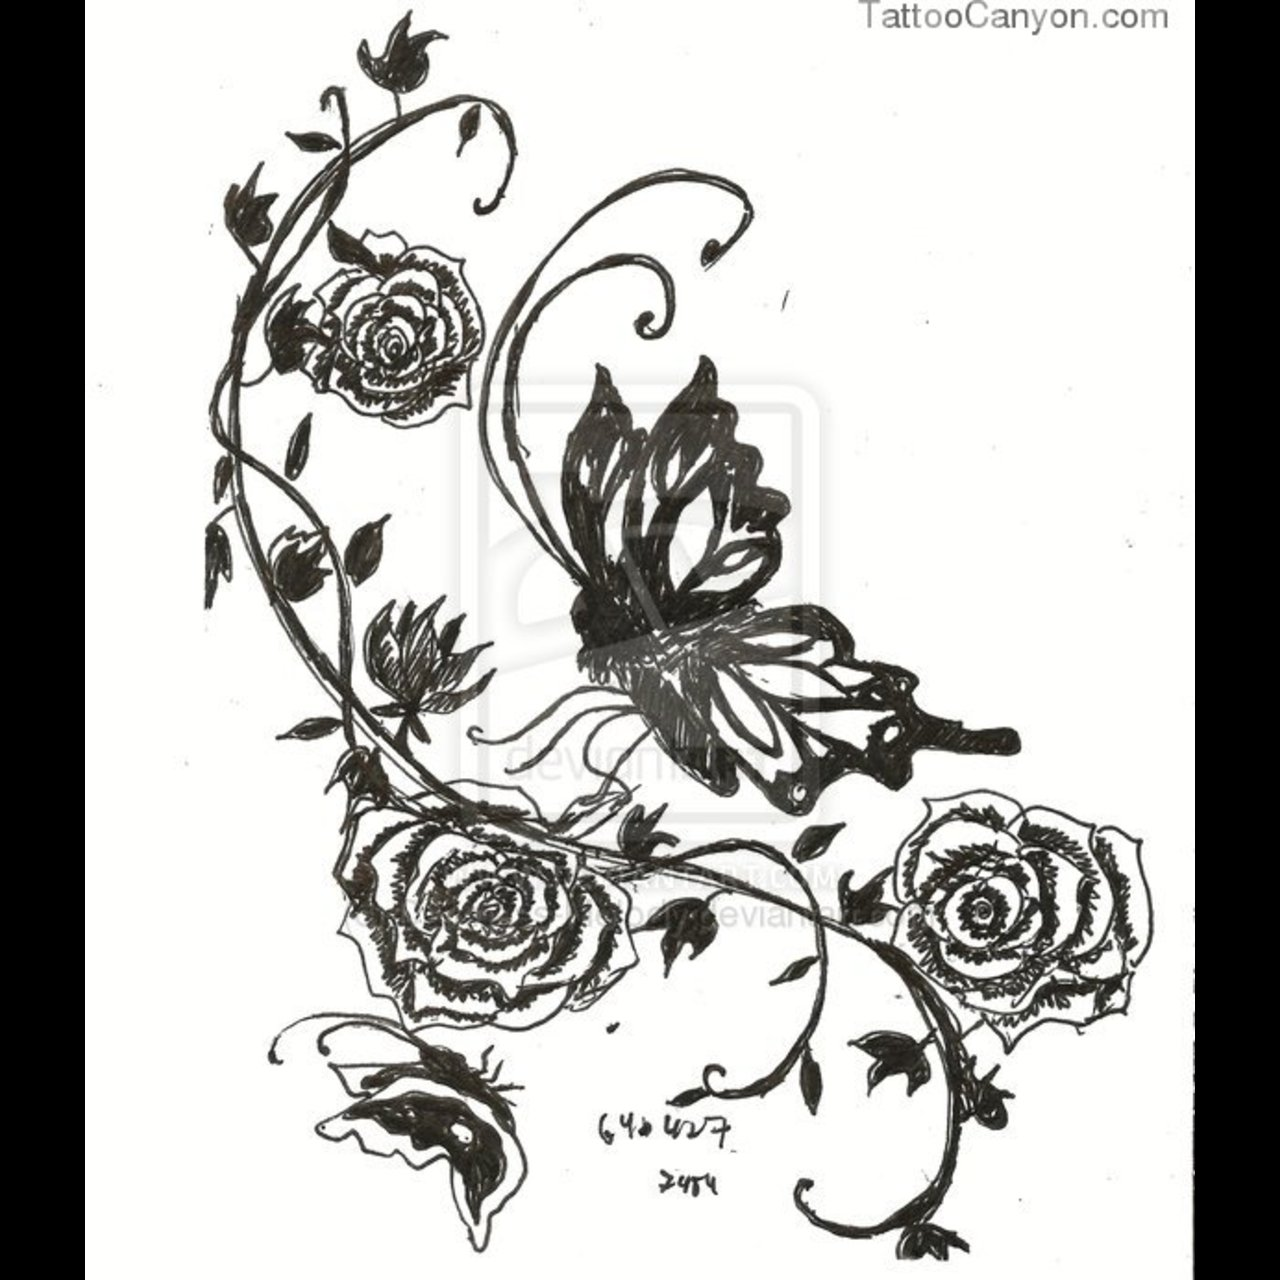 mermaid and rose vine tattoo design photo 2 2017 real photo pictures images and sketches. Black Bedroom Furniture Sets. Home Design Ideas